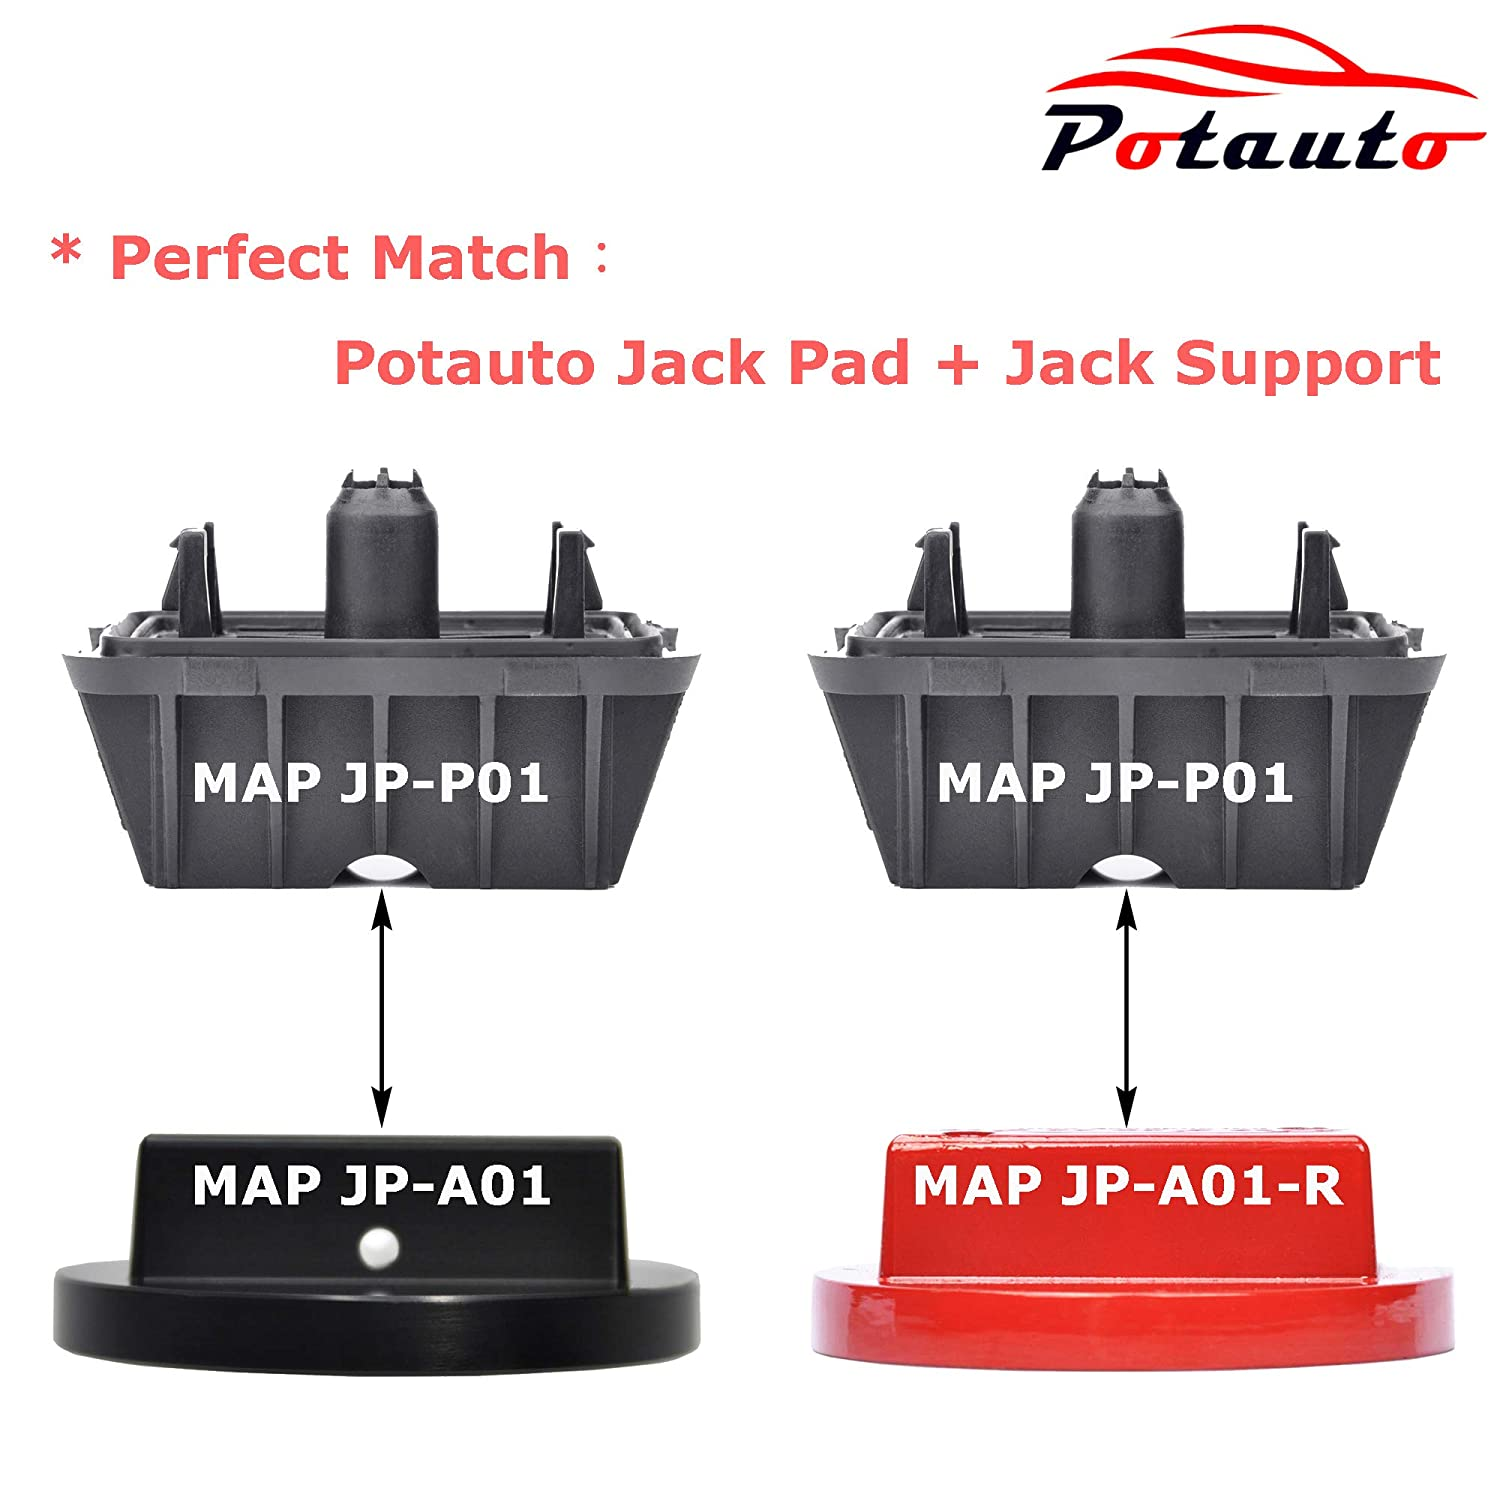 MINI Cooper Qty 4, Red Potauto Universal Aluminum Jack Pad Jacking Puck Adapter Support for BMW